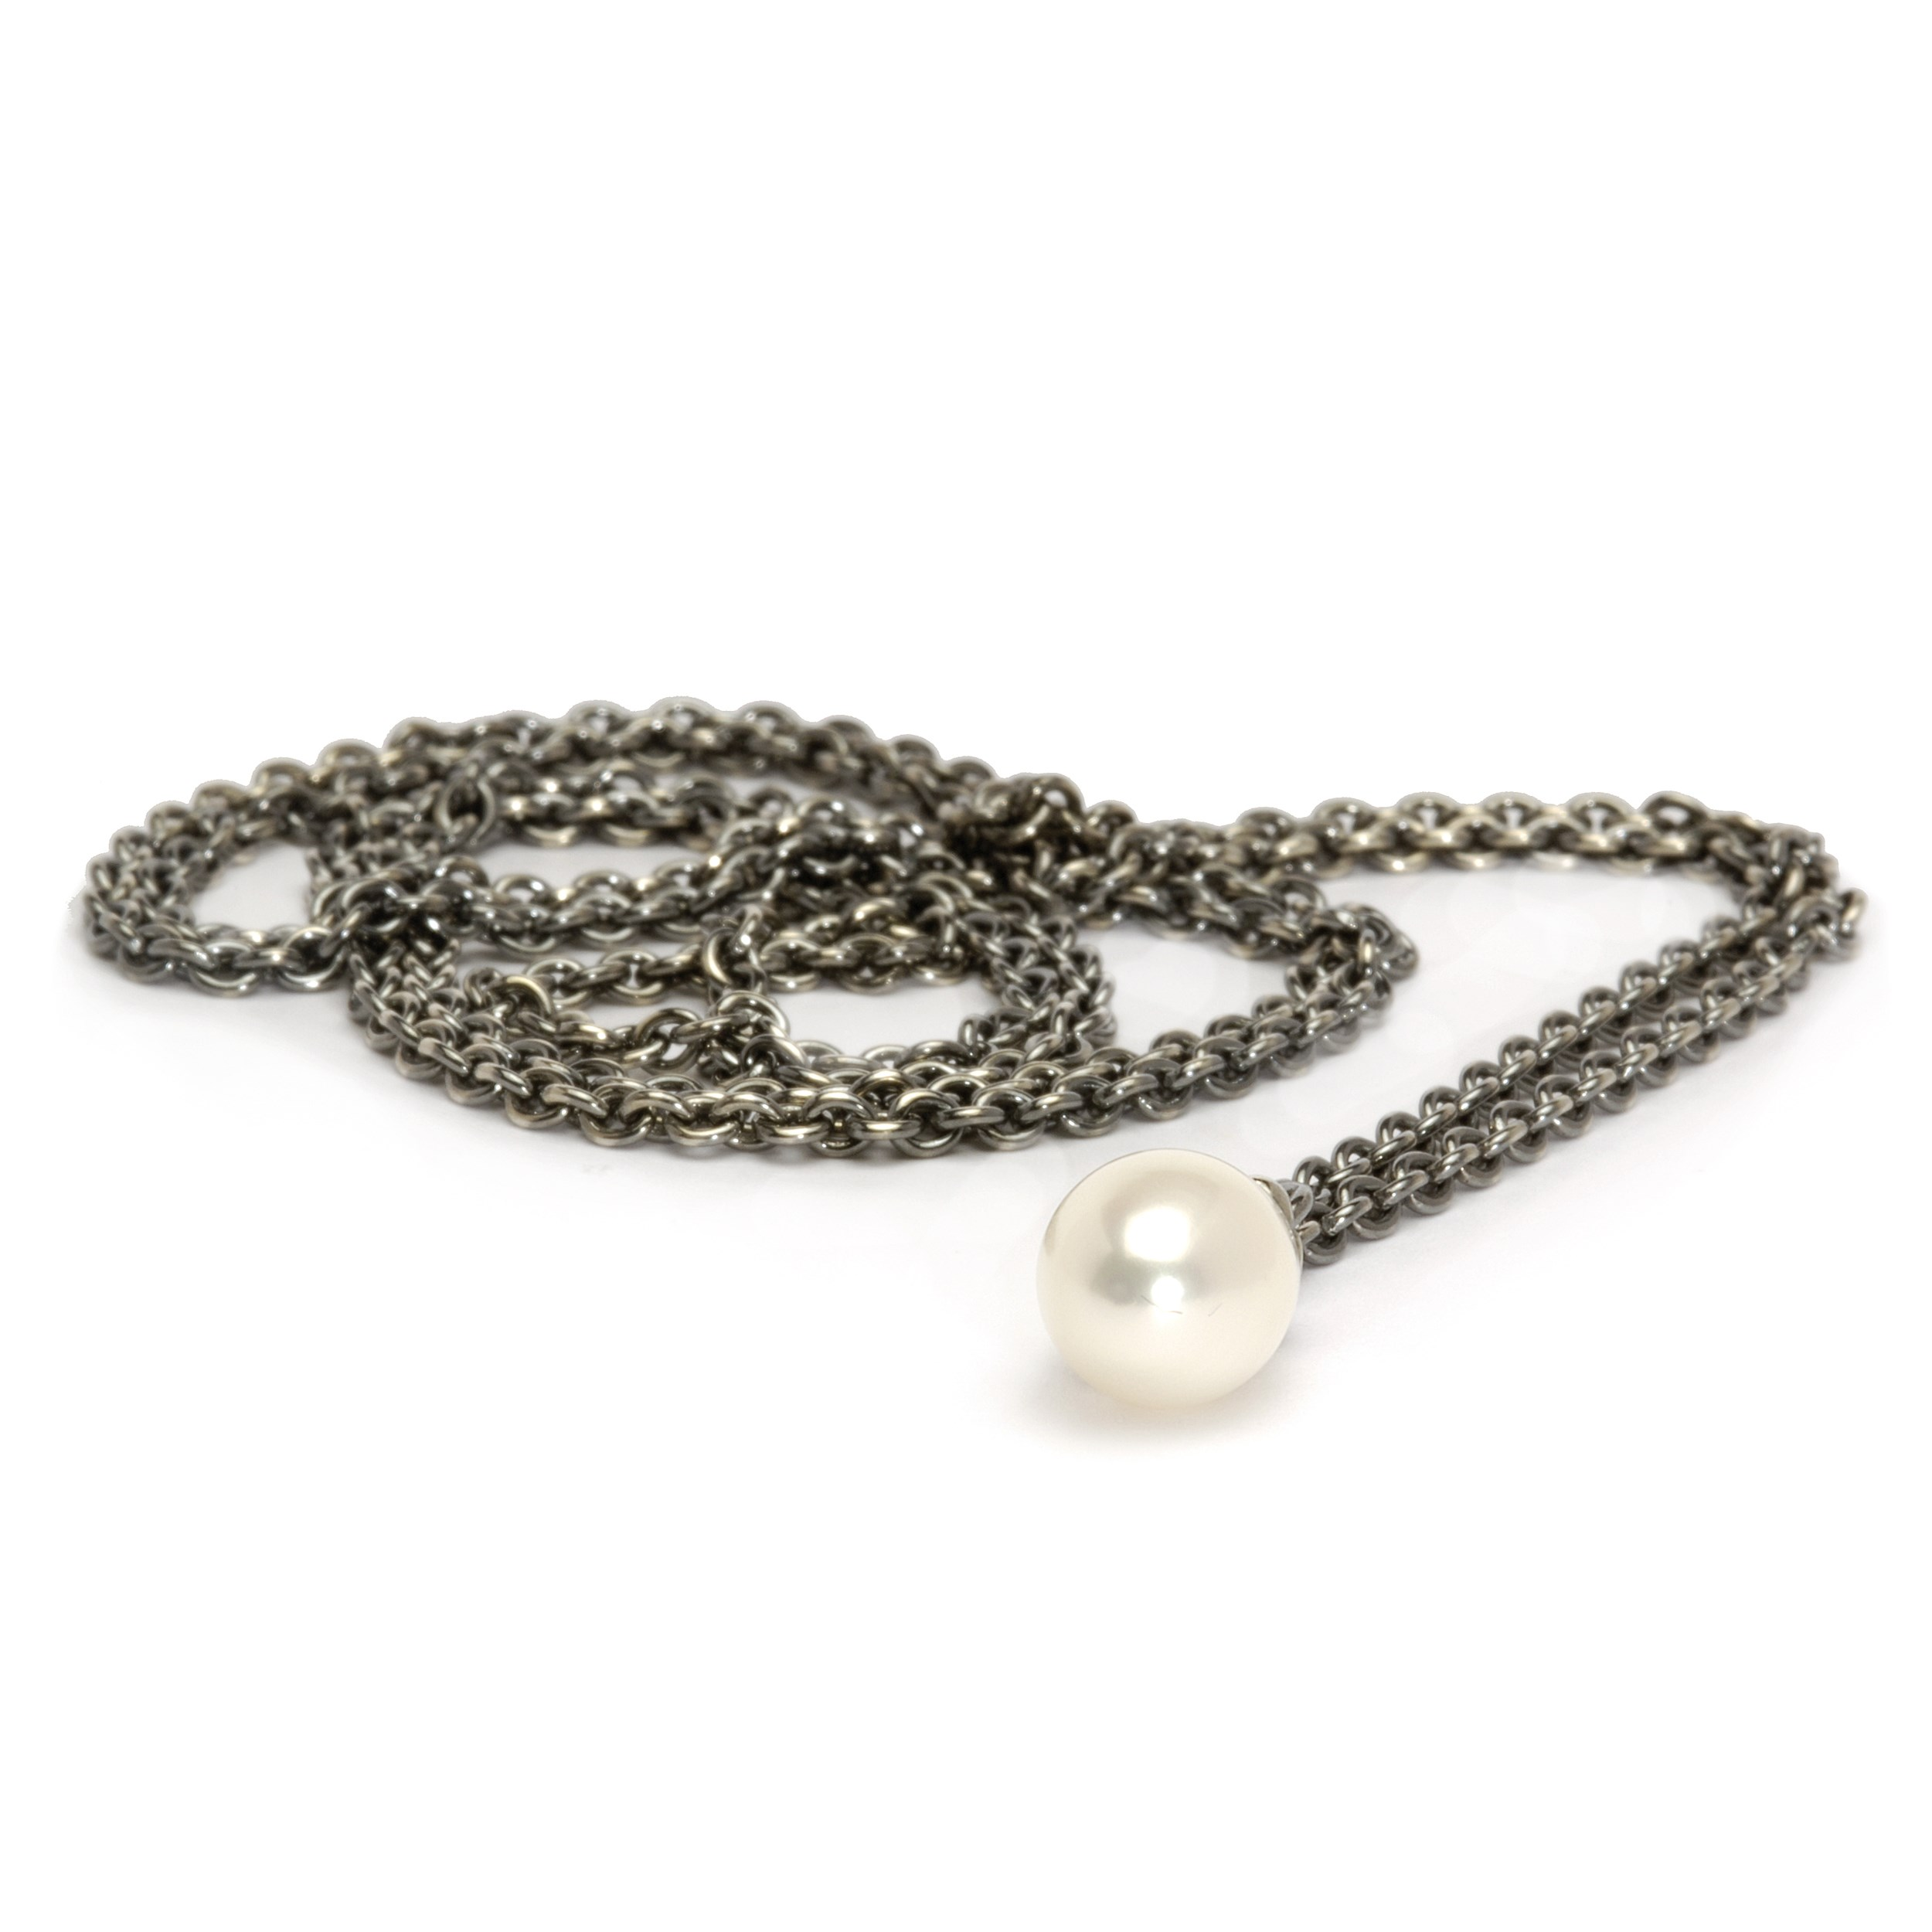 Fantasy Necklace With White Pearl 60 cm / 23.6 in